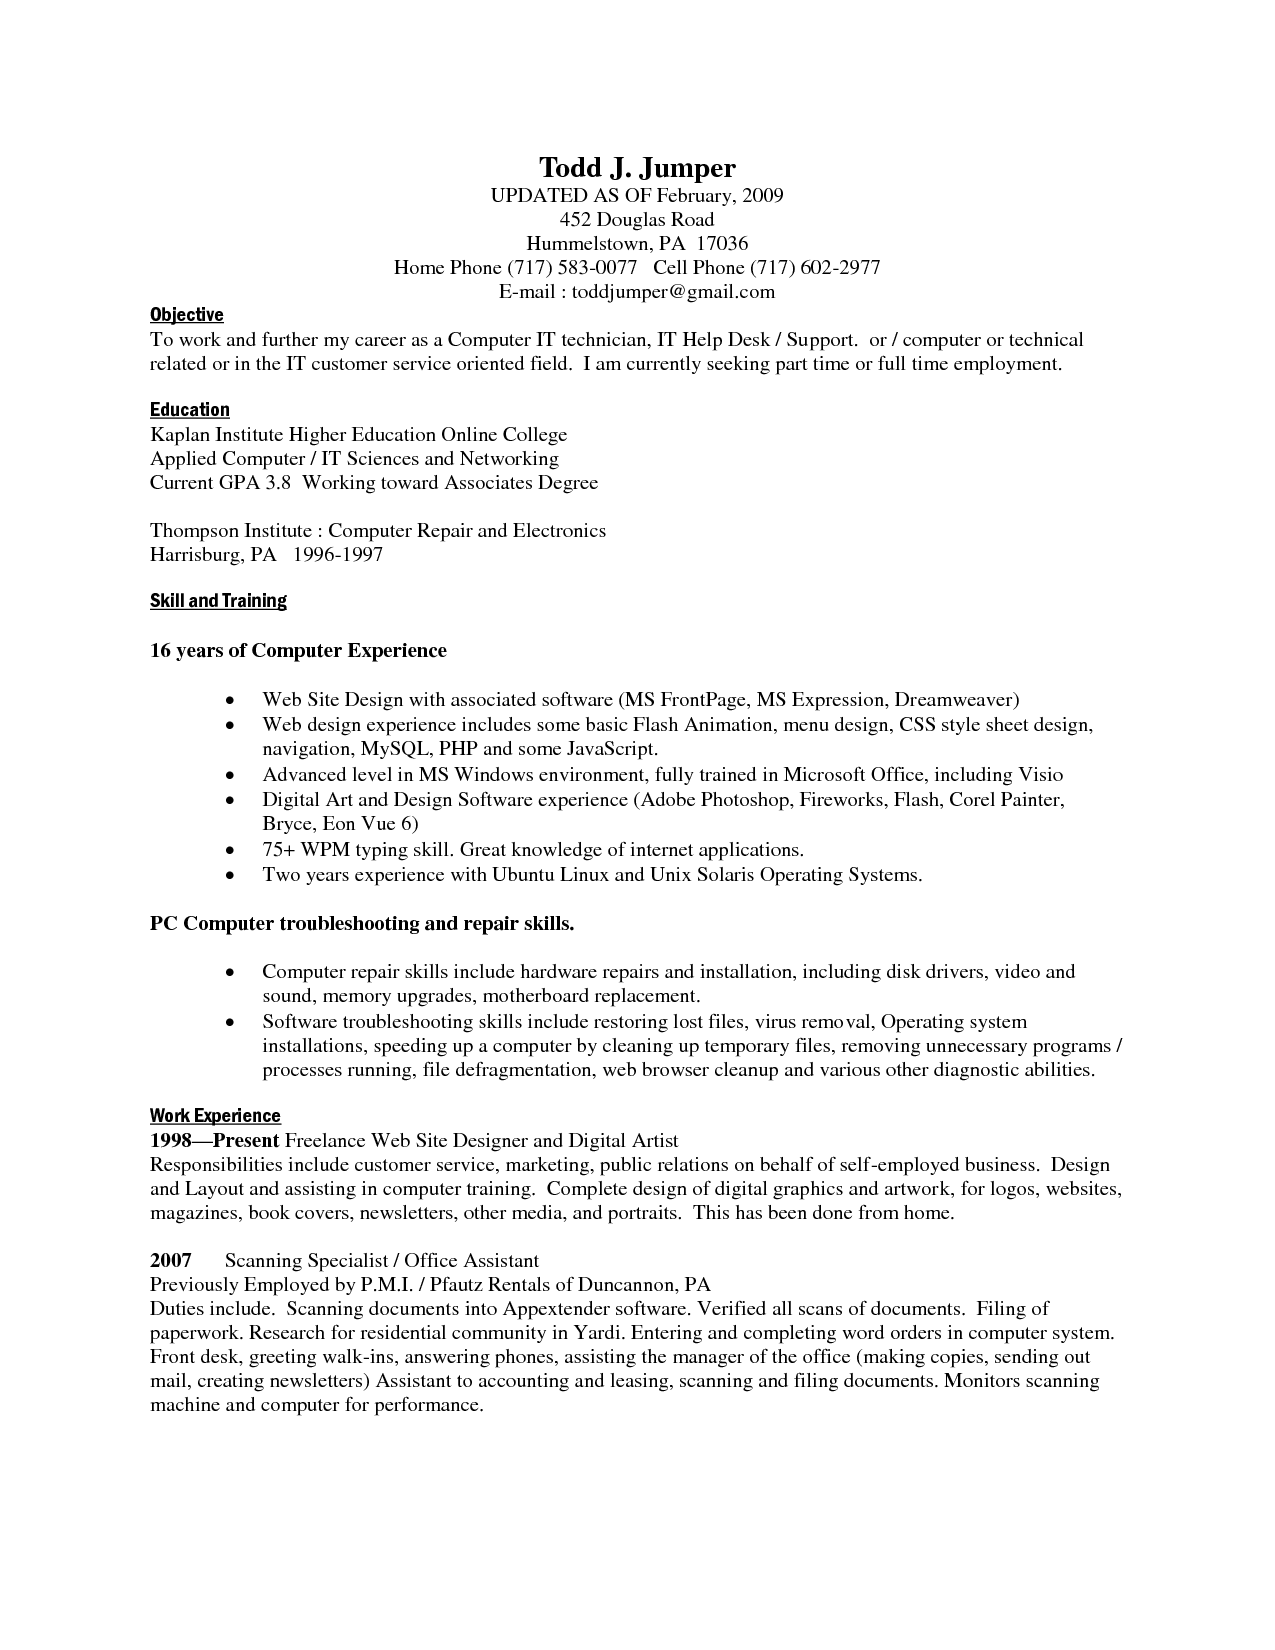 Skills Section On Resume Interesting Computer Skills On Sample Resume  Httpwwwresumecareer Design Ideas